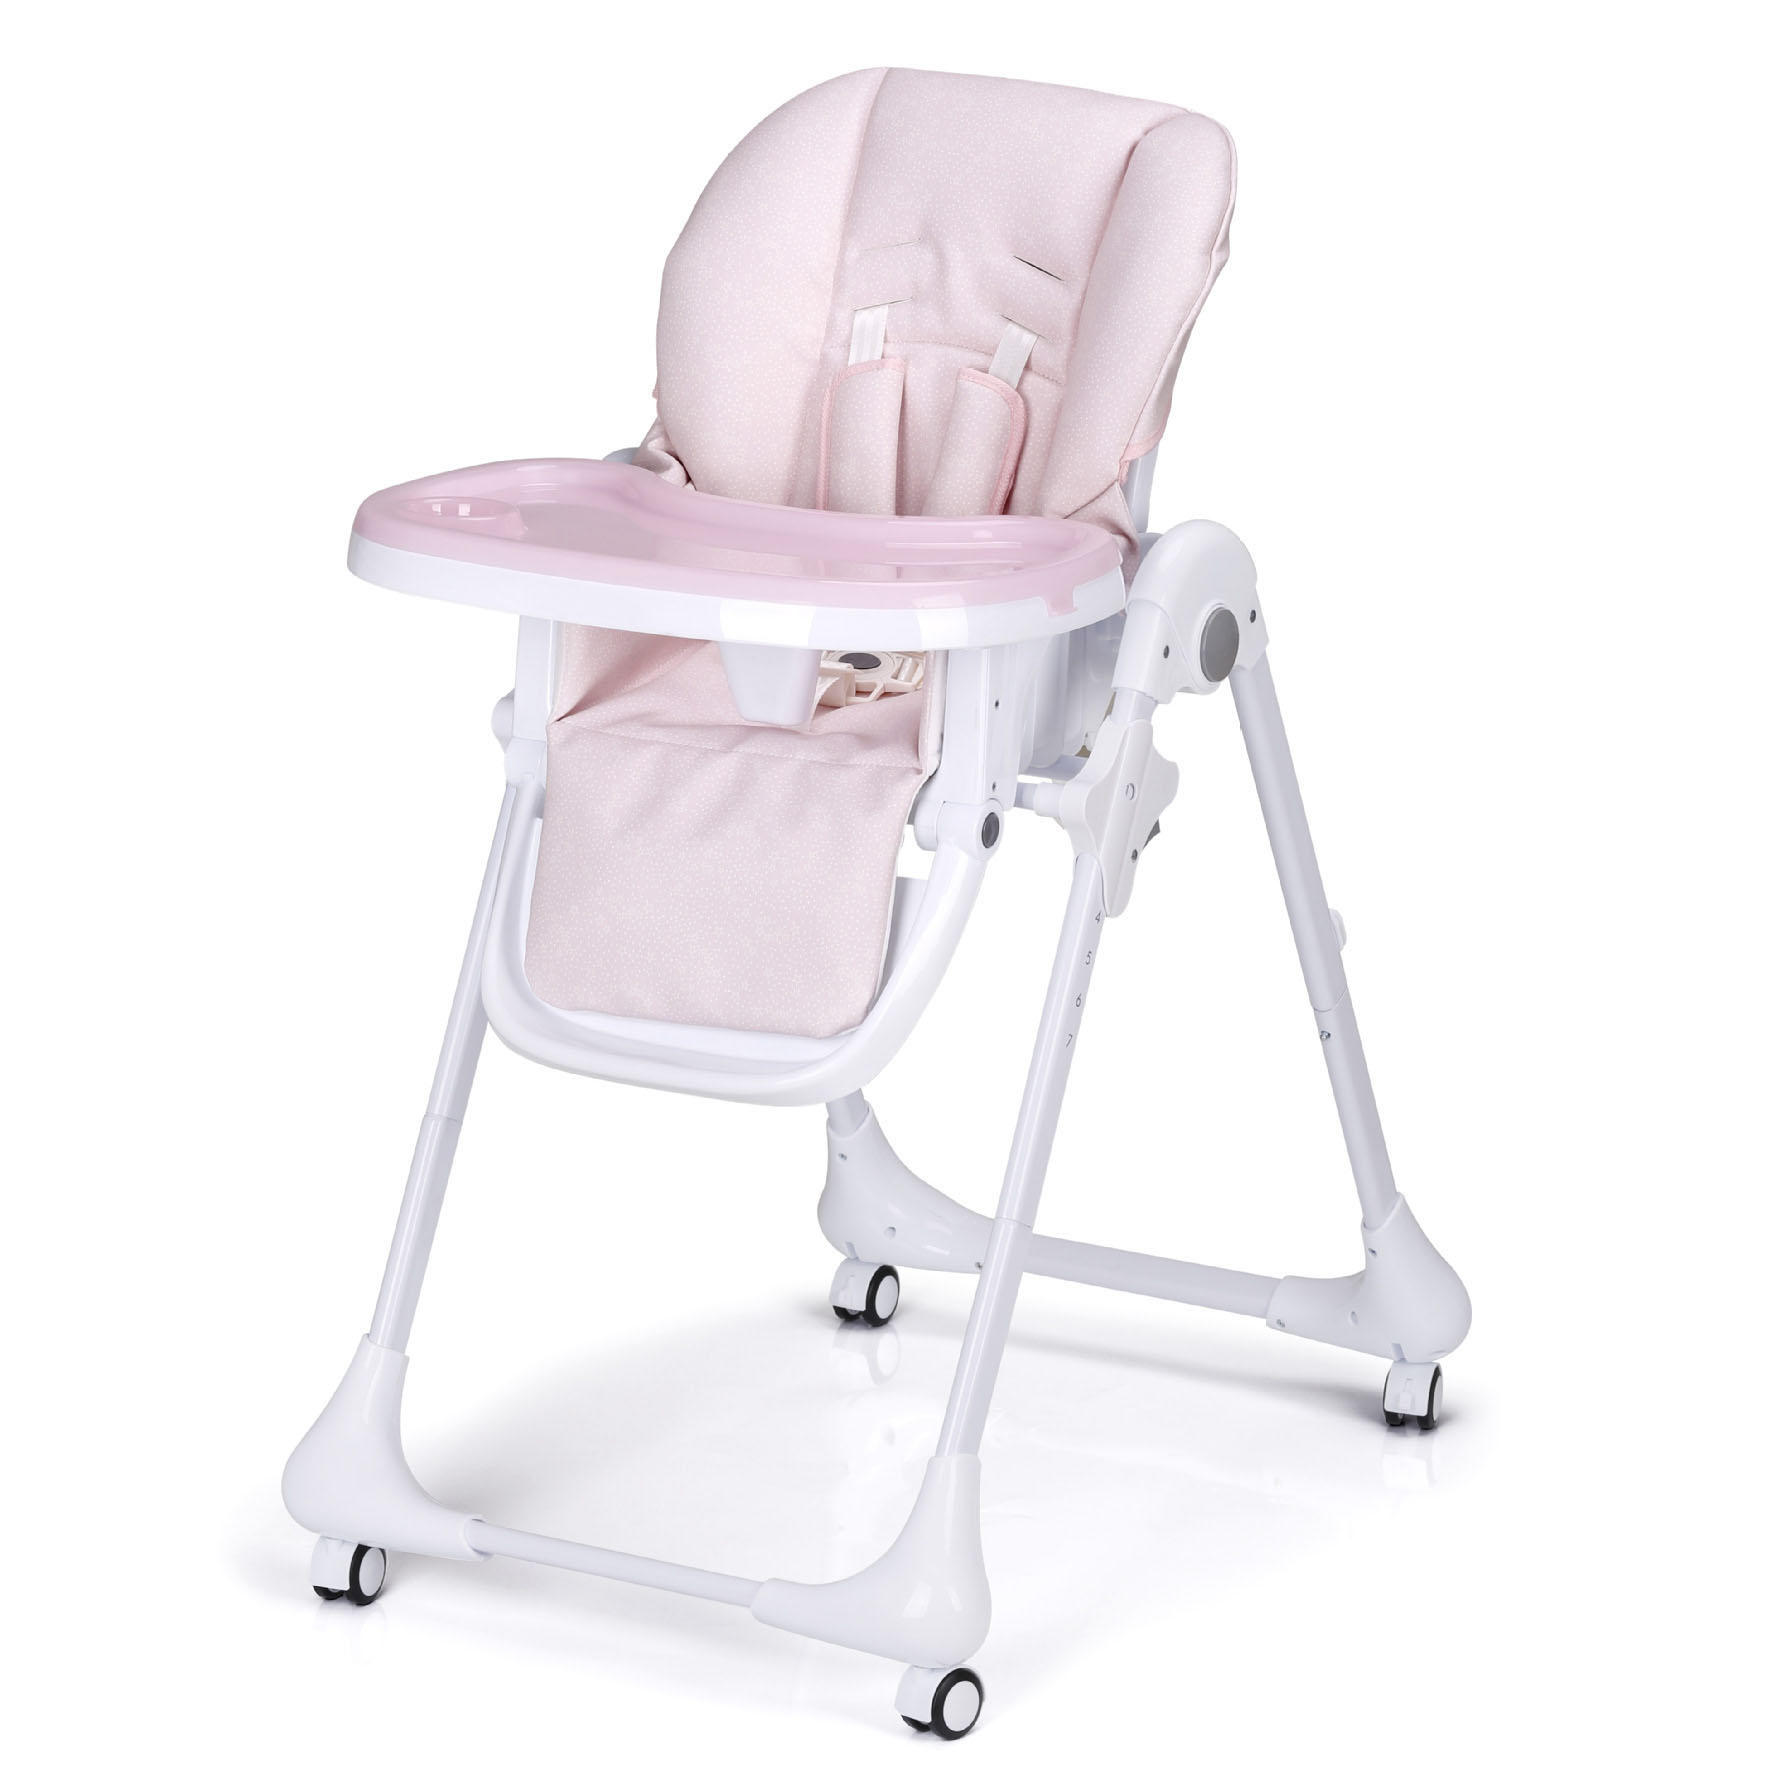 New high chair from birth adjustable Suppliers for older baby-1